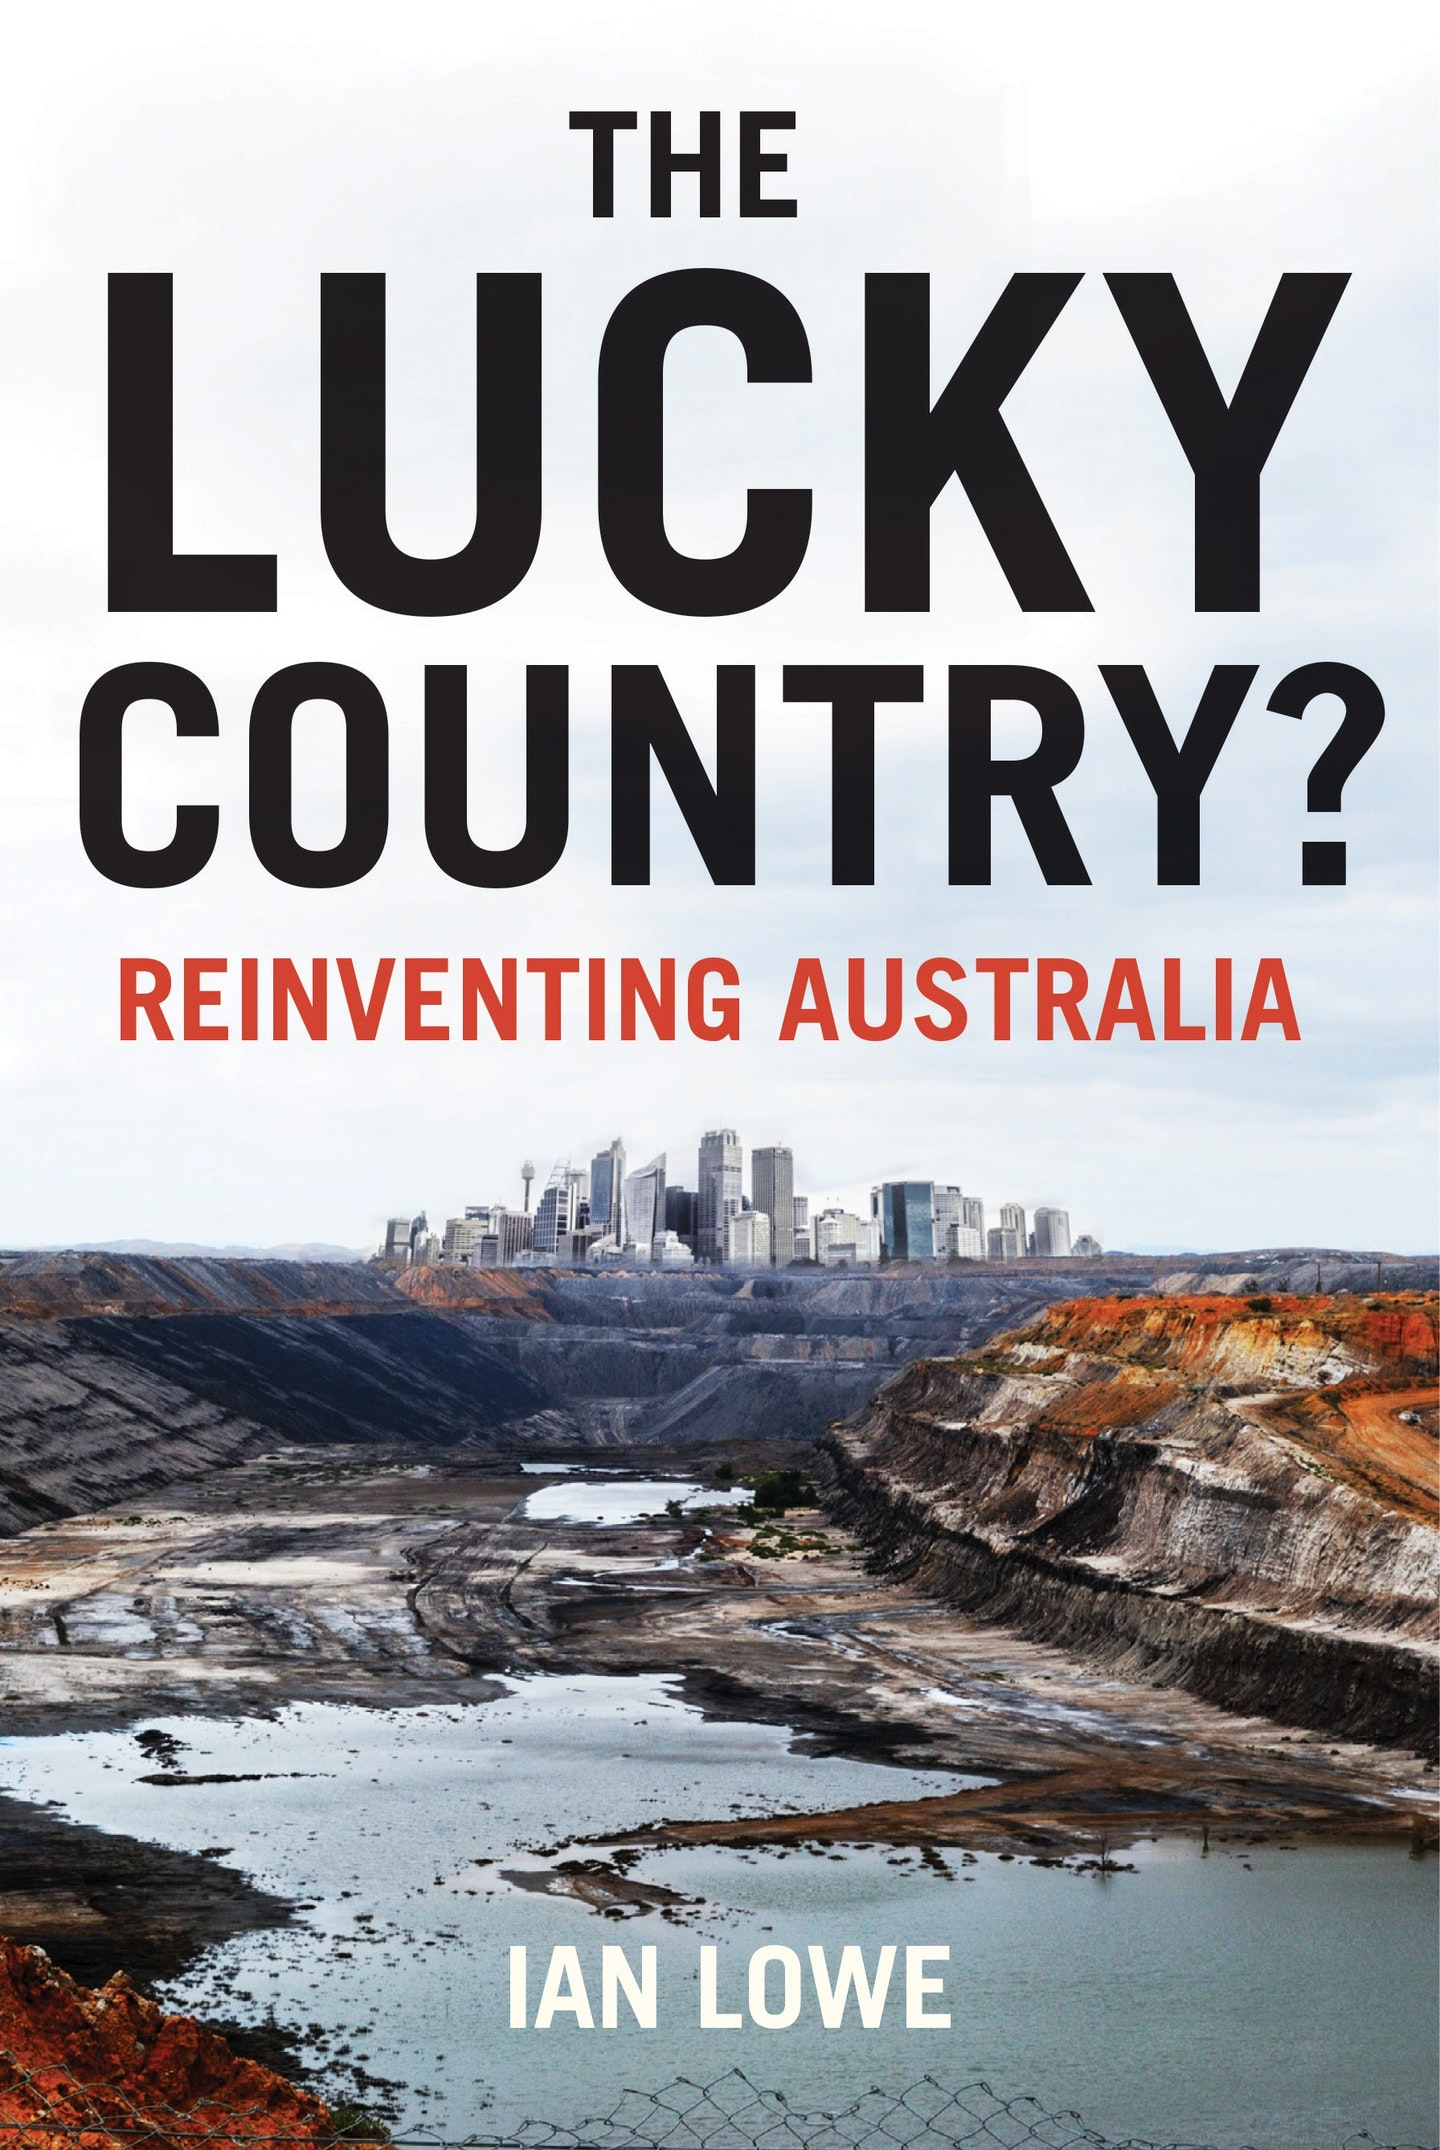 australia the lucky country essay Australians and businesses overwhelmingly think our country is a great place to live and have a business however, australian consumers and businesses are anxious about what the future.